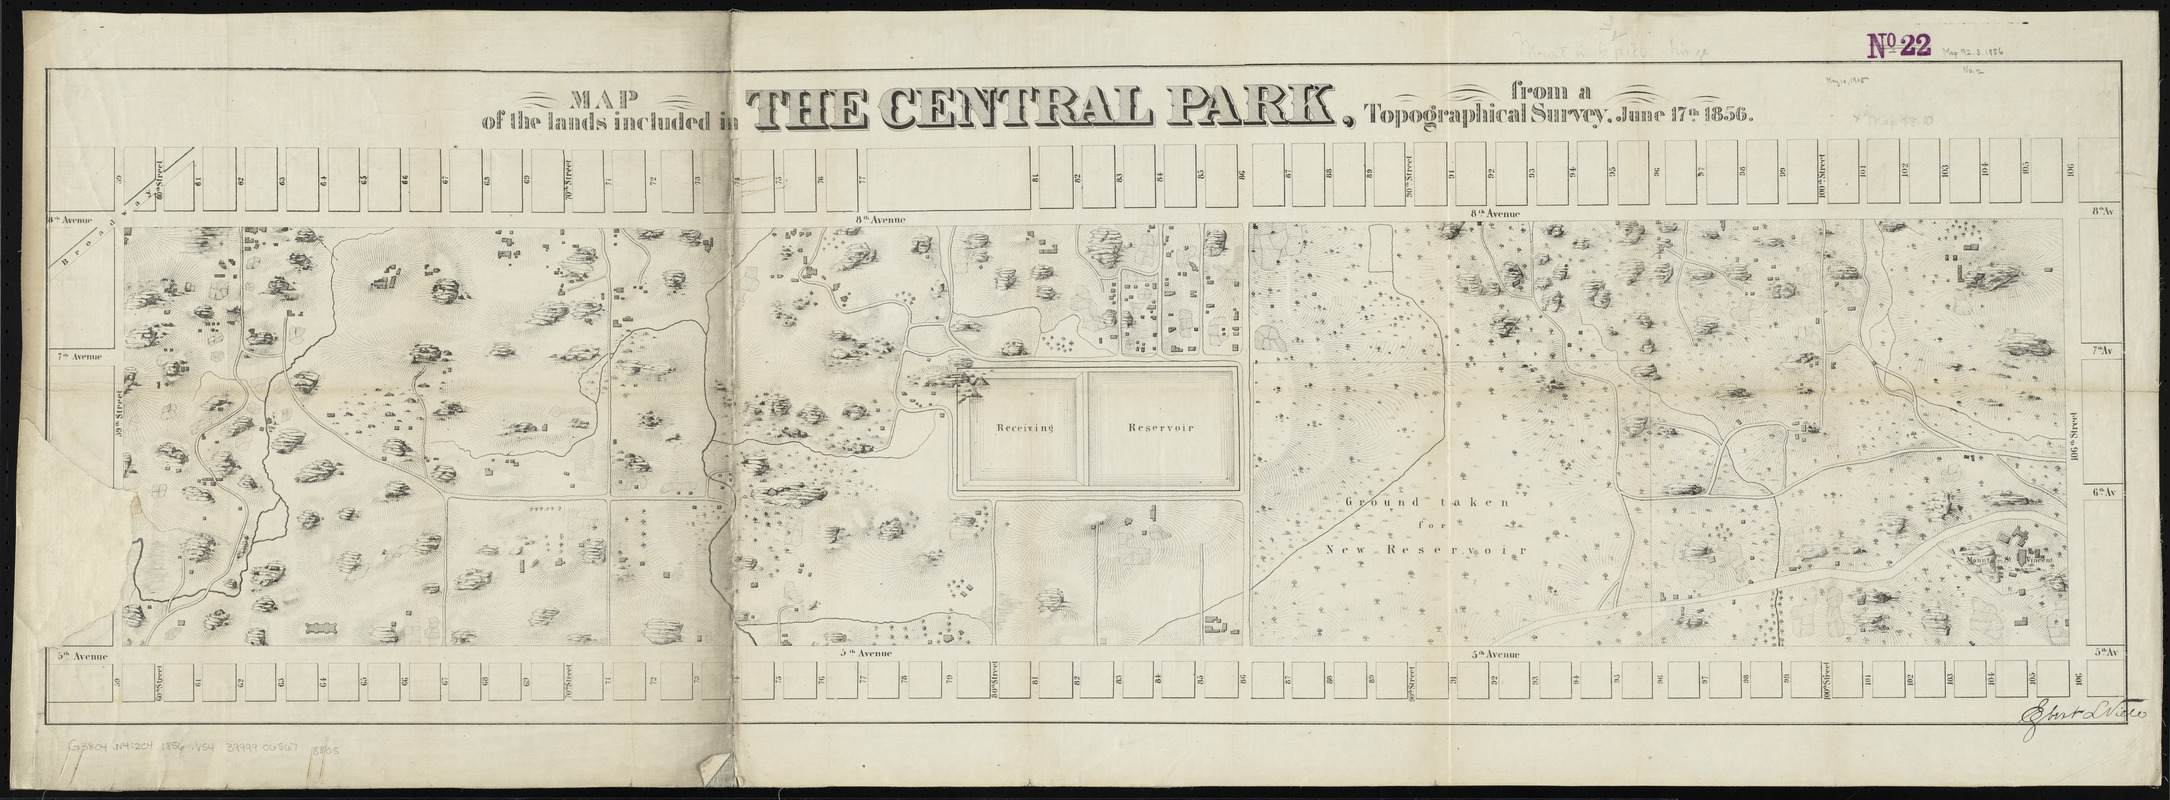 Map of the lands included in the Central Park, from a topographical survey, June 17th, 1856